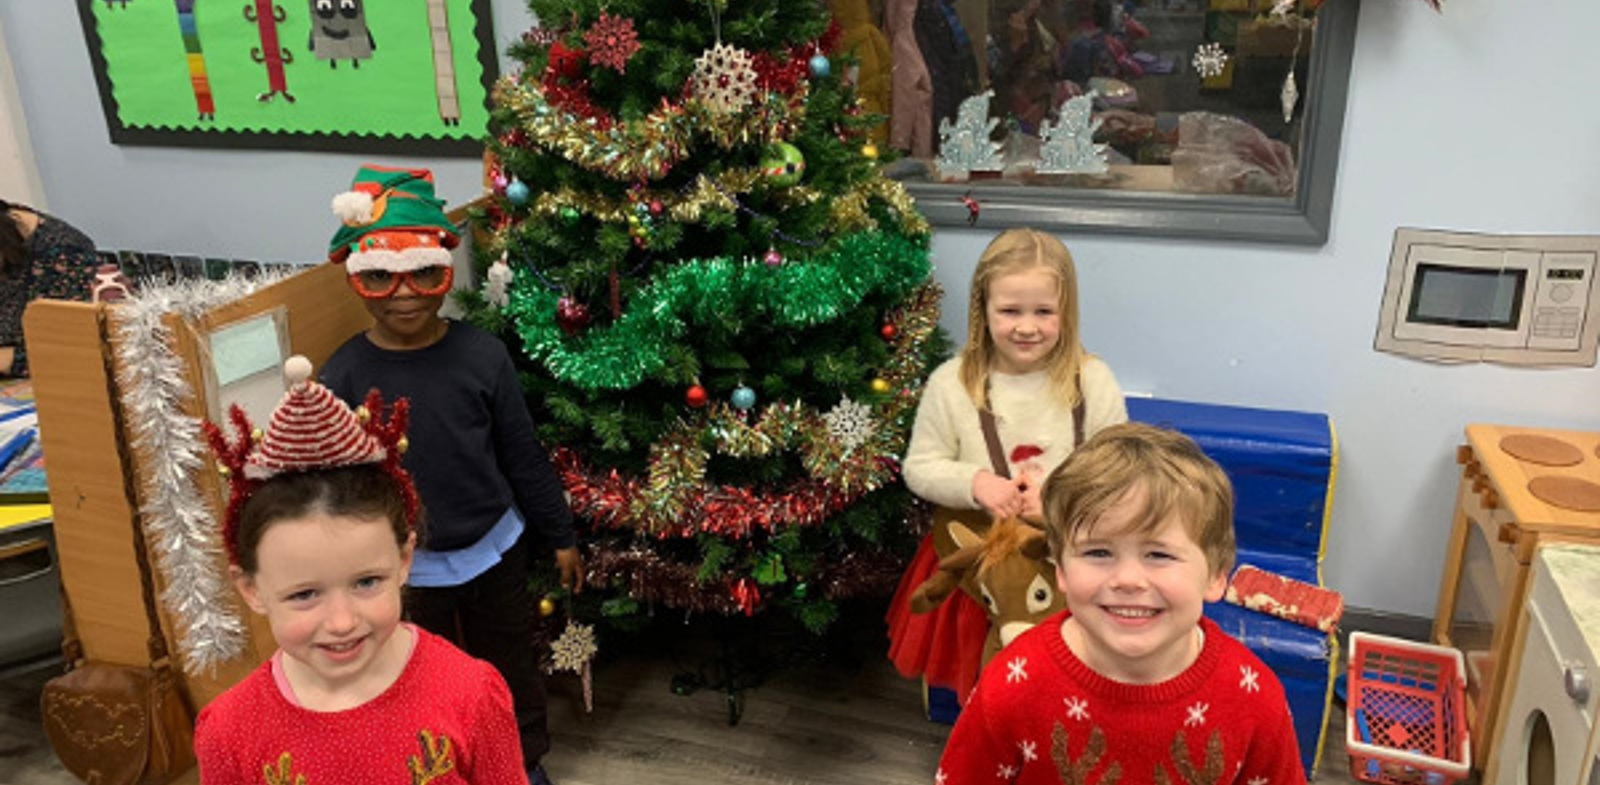 Festive fundraising at Coventry school